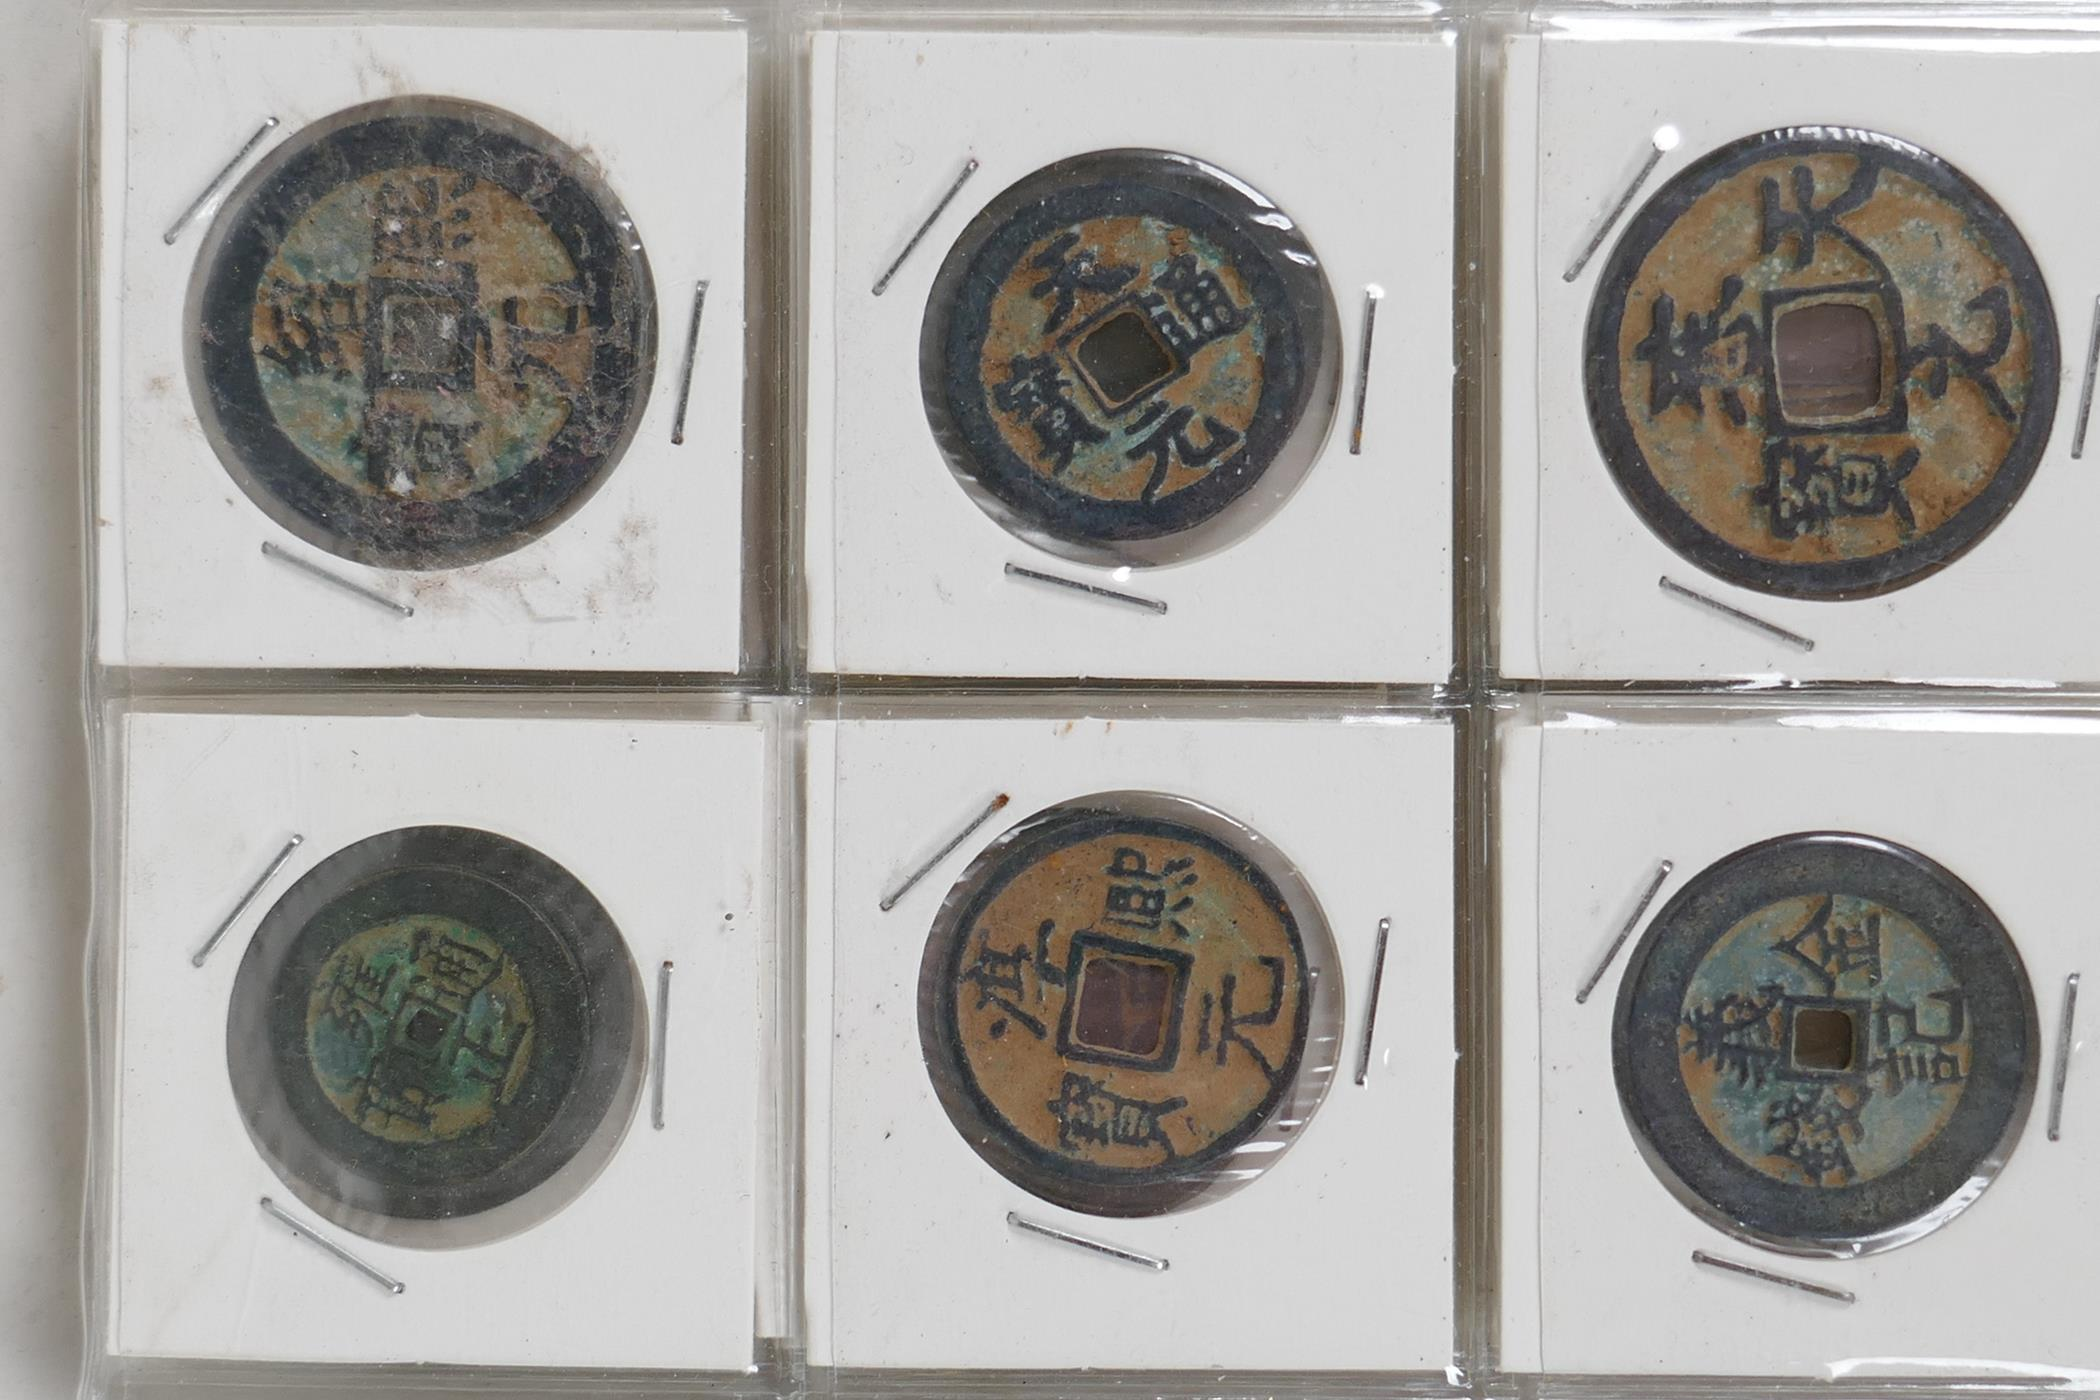 A small album containing 30 replica Chinese coins